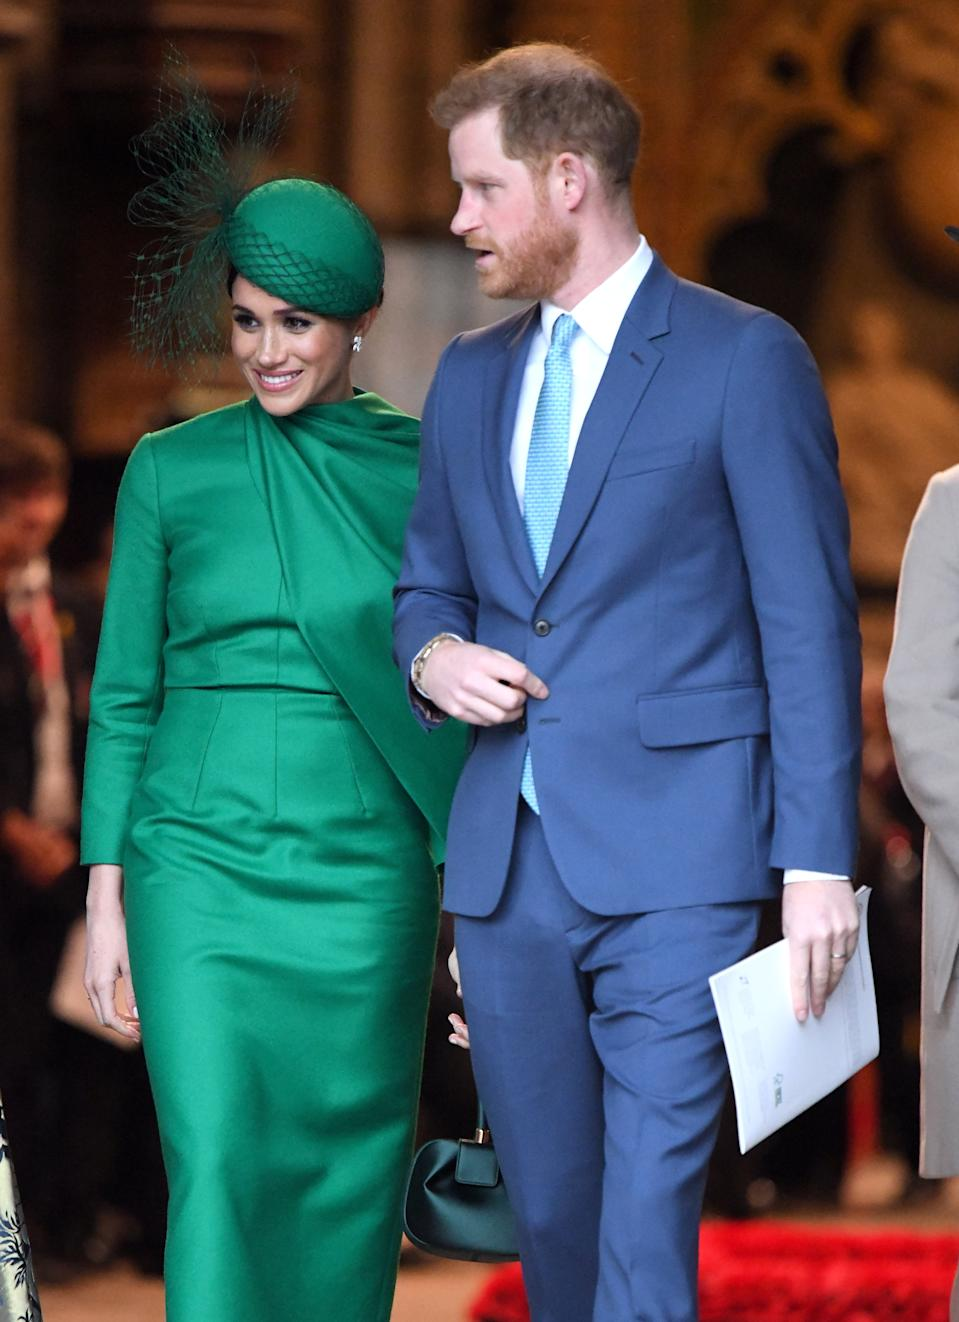 LONDON, ENGLAND - MARCH 09: Prince Harry, Duke of Sussex and Meghan, Duchess of Sussex depart after attending the Commonwealth Day Service 2020 at Westminster Abbey on March 09, 2020 in London, England. (Photo by Karwai Tang/WireImage)